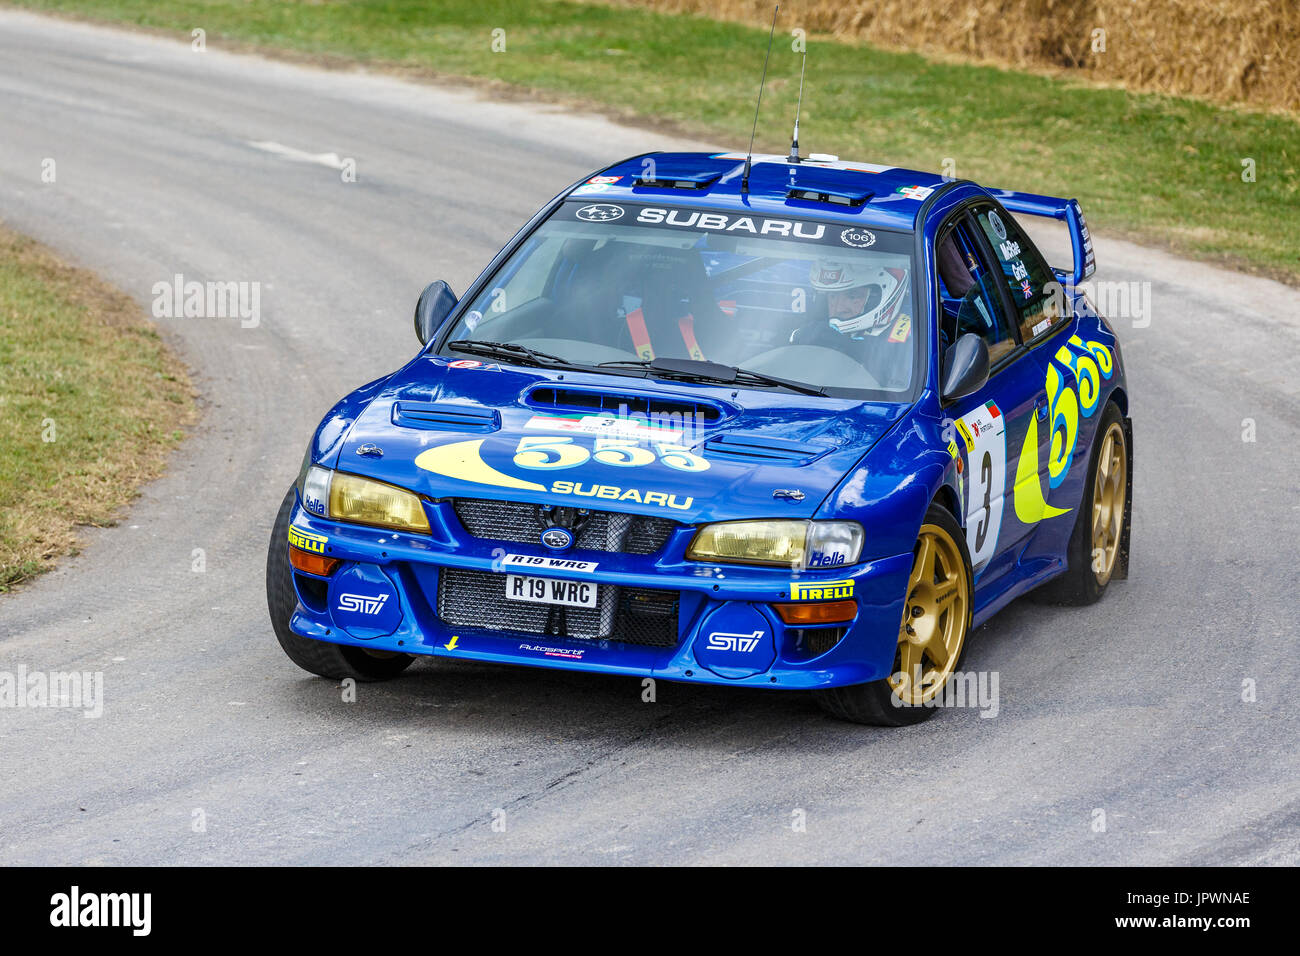 ex colin mcrae 1997 subaru impreza wrc rallye auto mit fahrer steve rockingham auf die 2017. Black Bedroom Furniture Sets. Home Design Ideas